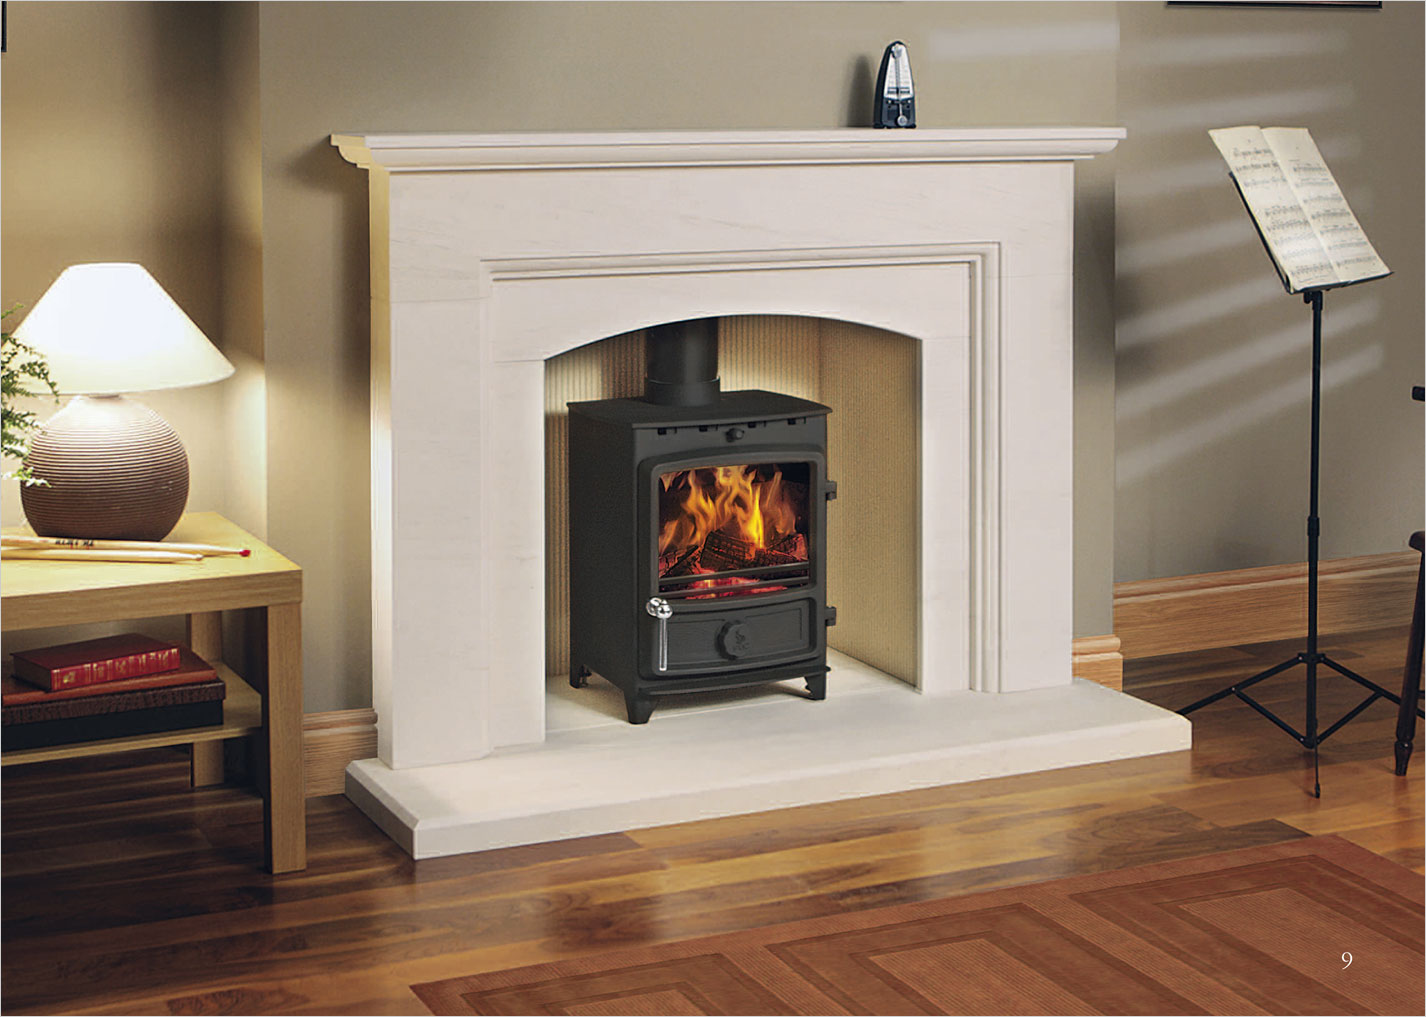 FDC_Stoves_S_Compressed_2015-11